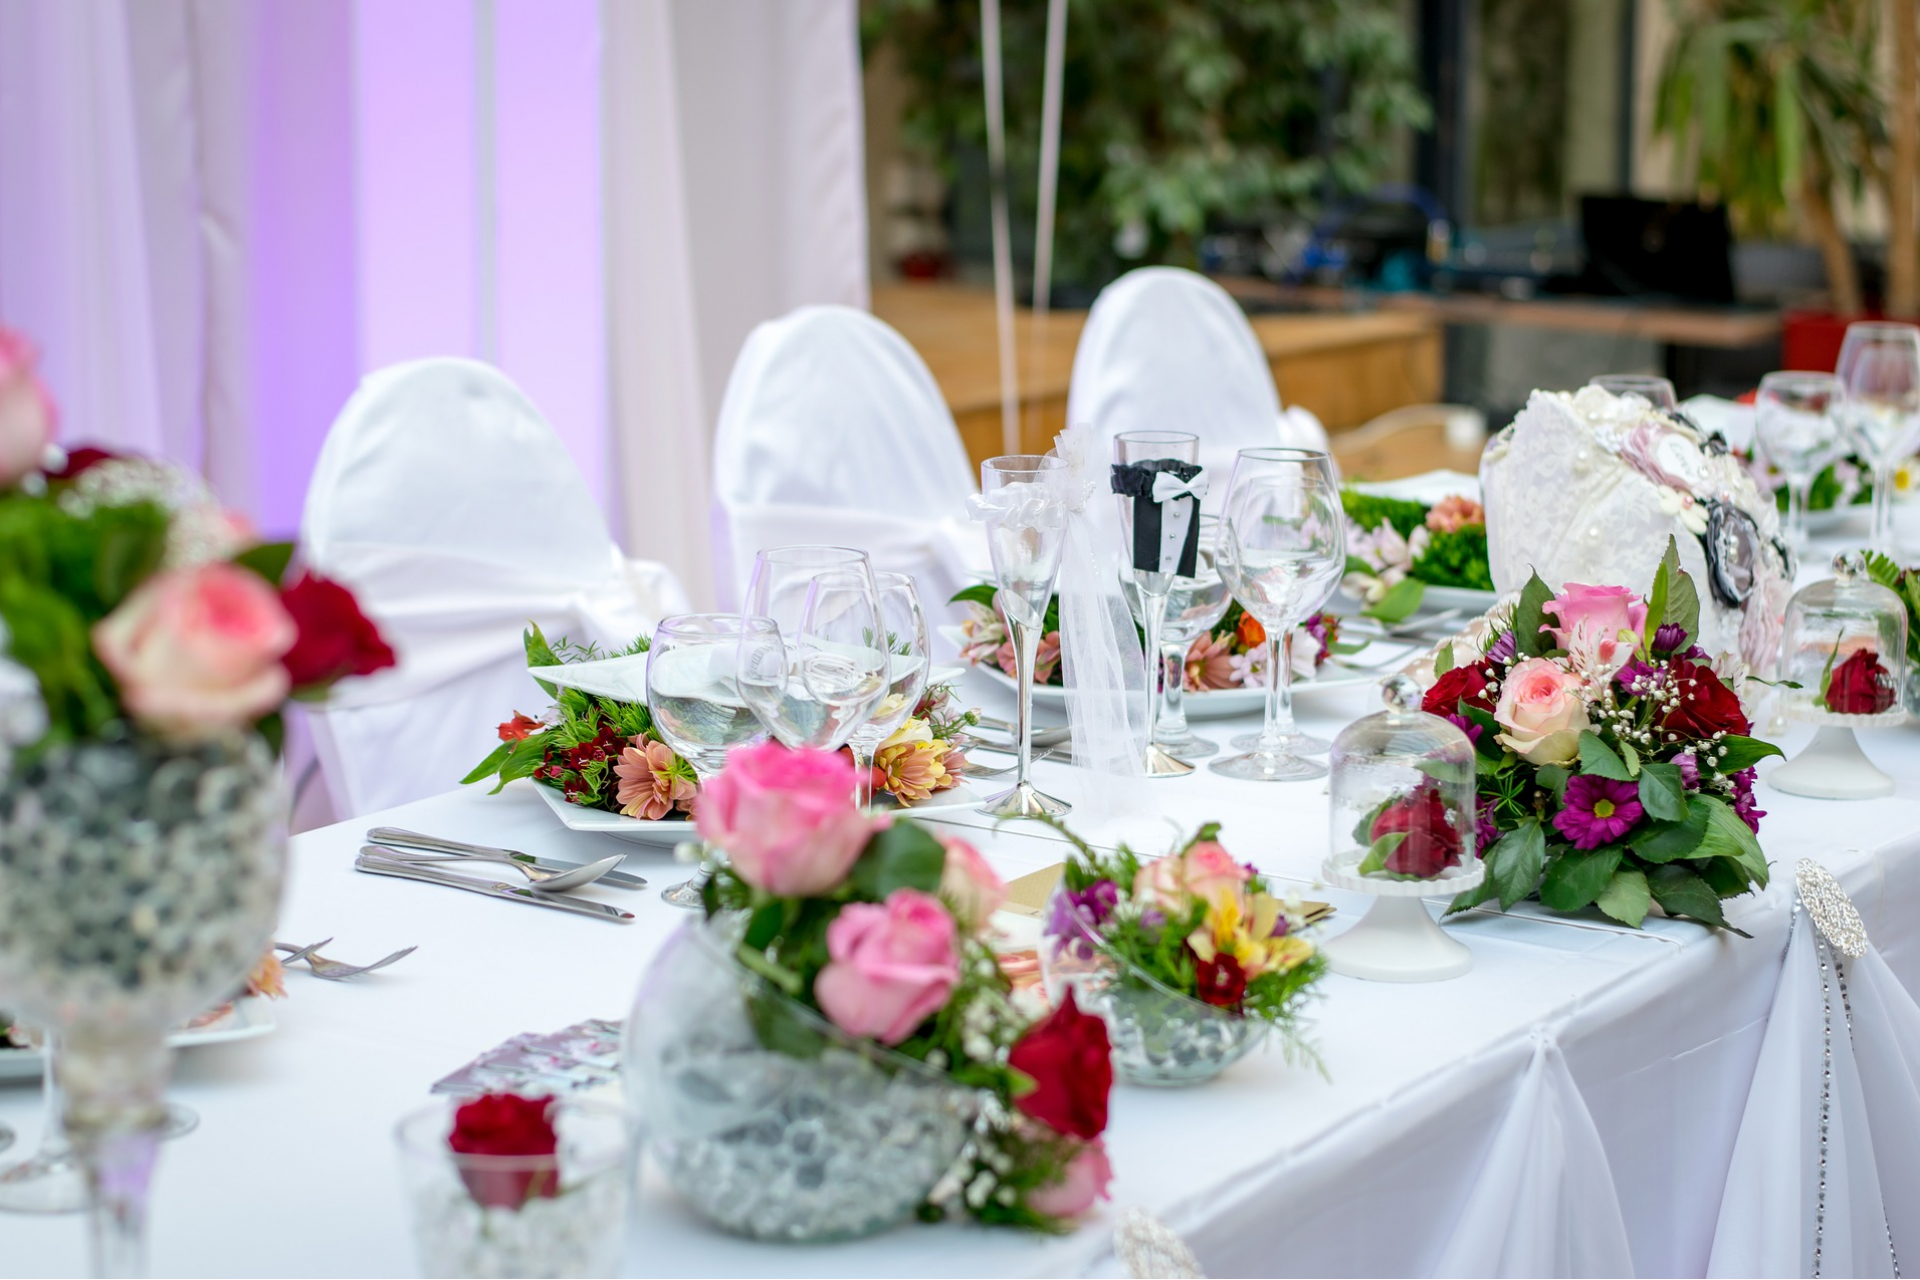 reception-salle-services-acceuil-tapis-rouge-st-jerome.png